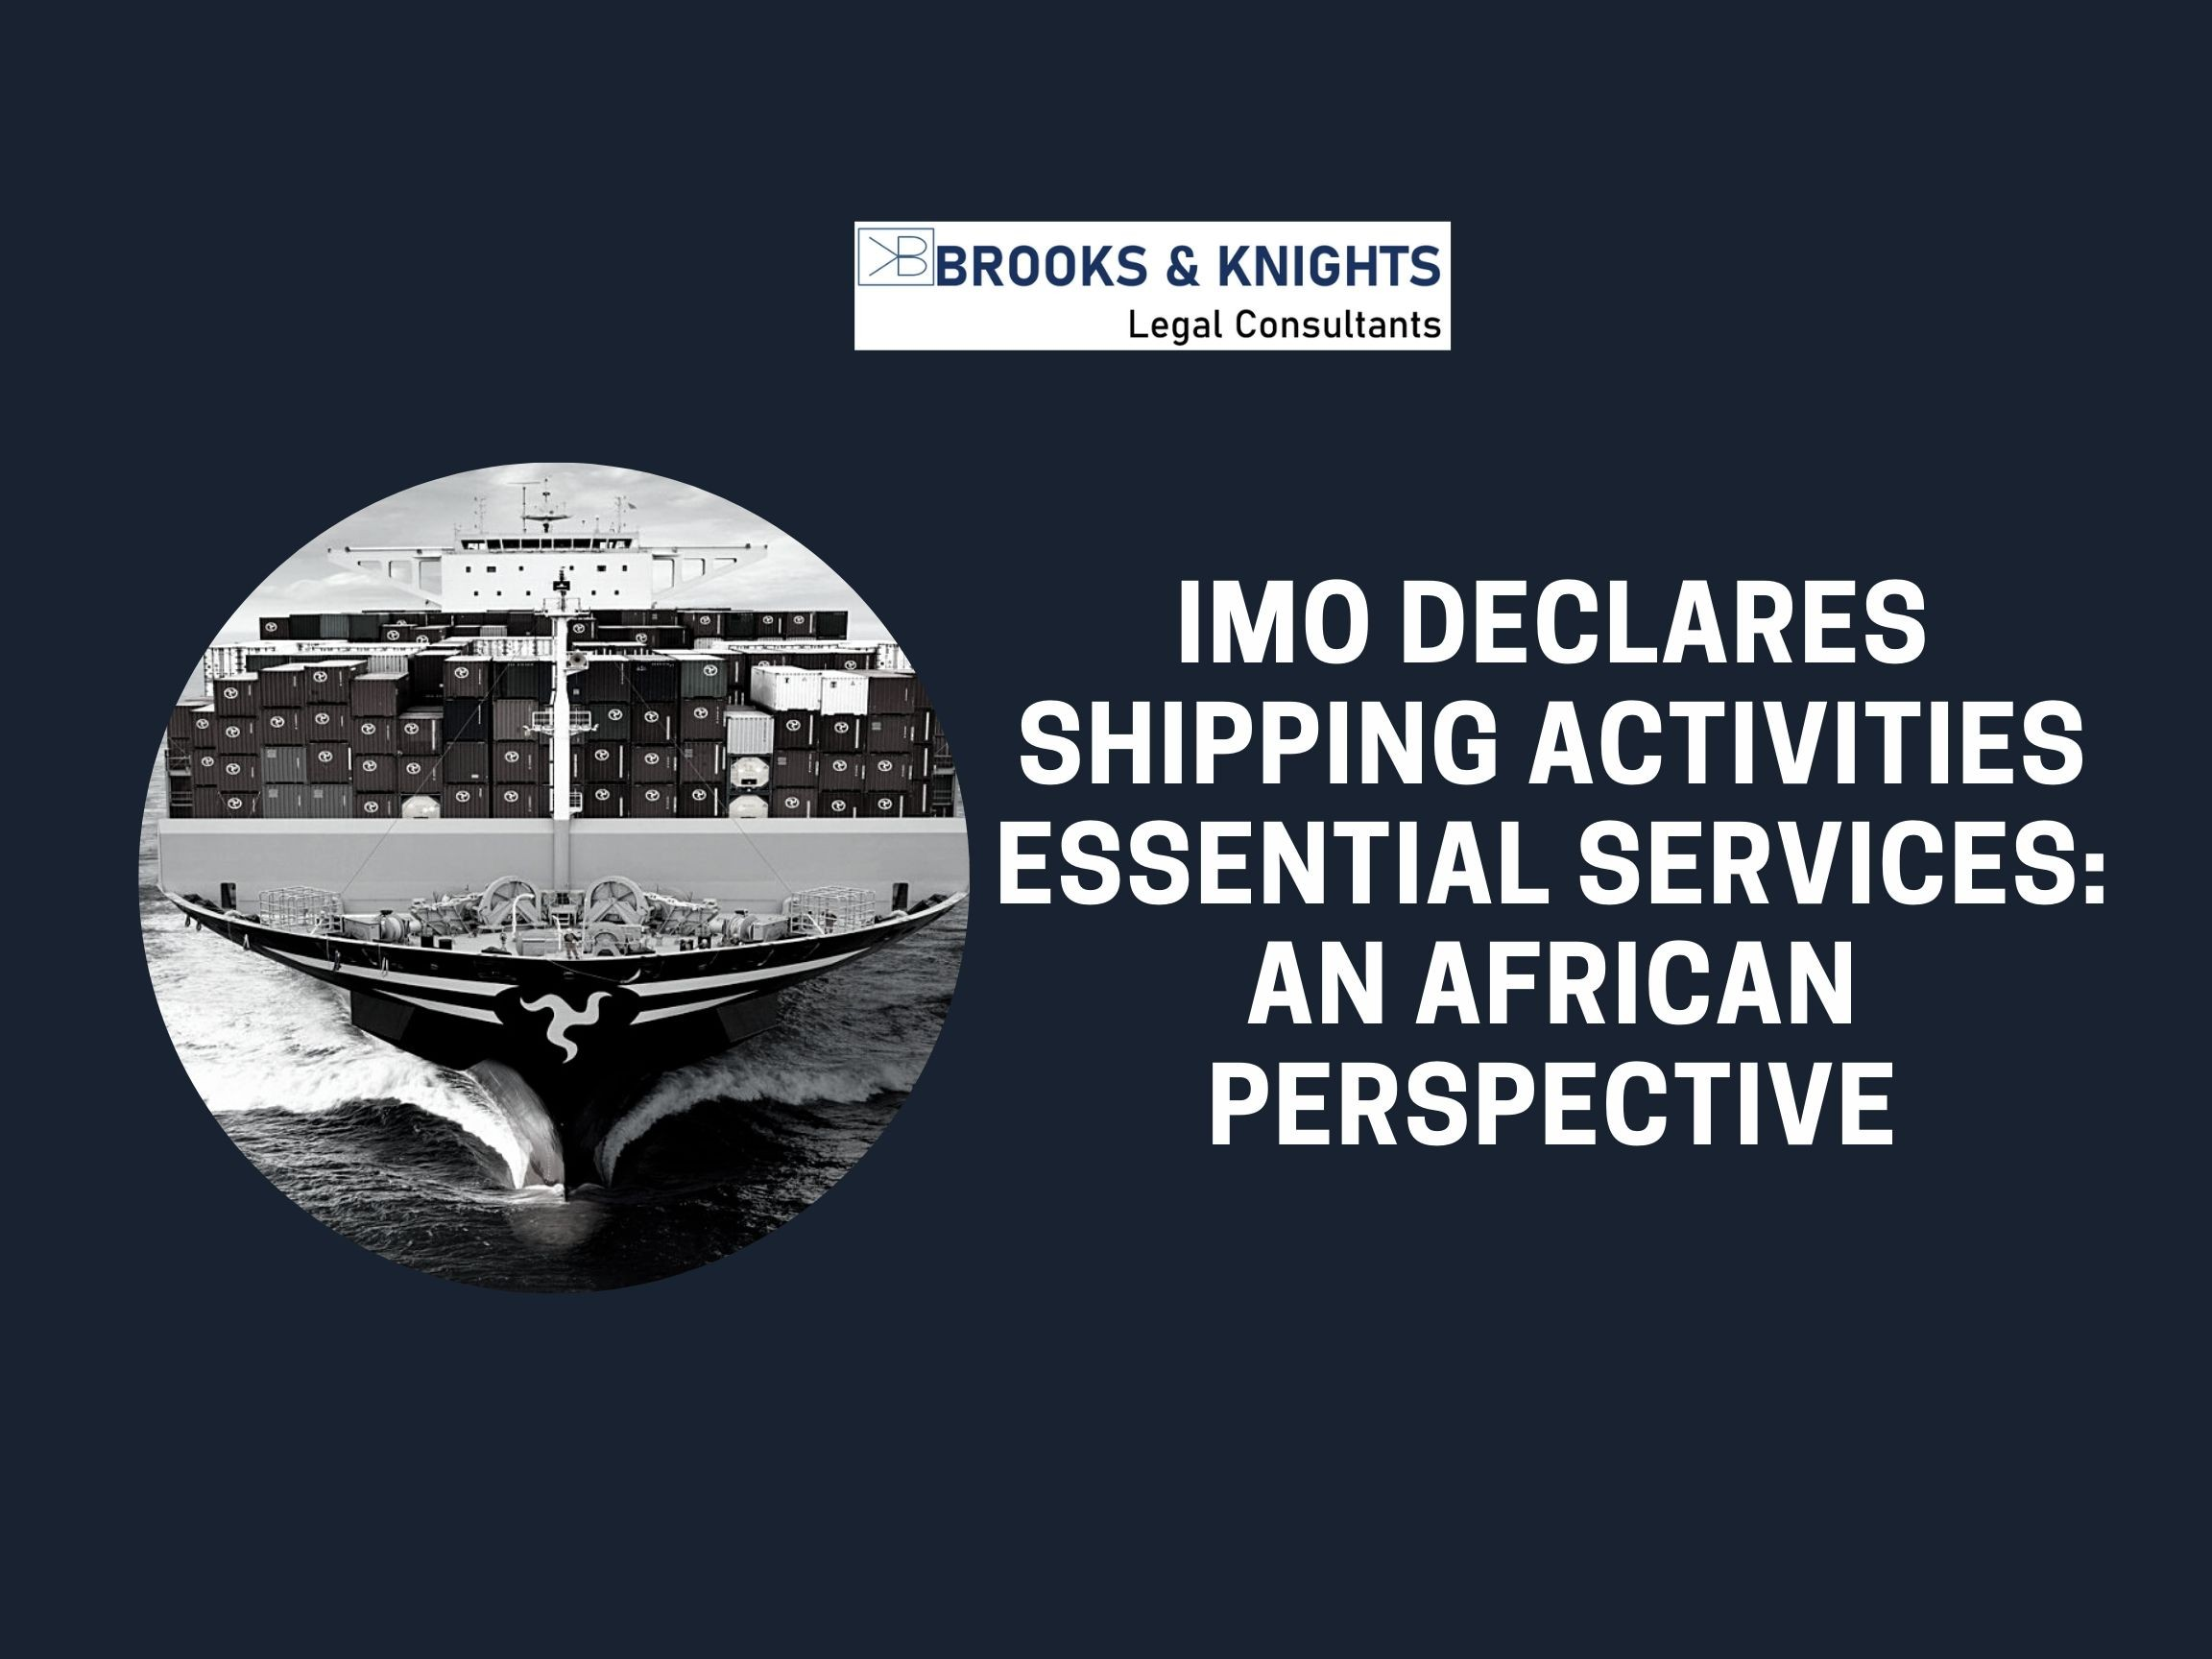 IMO DECLARES SHIPPING ACTIVITIES ESSENTIAL SERVICES: AN AFRICAN PERSPECTIVE